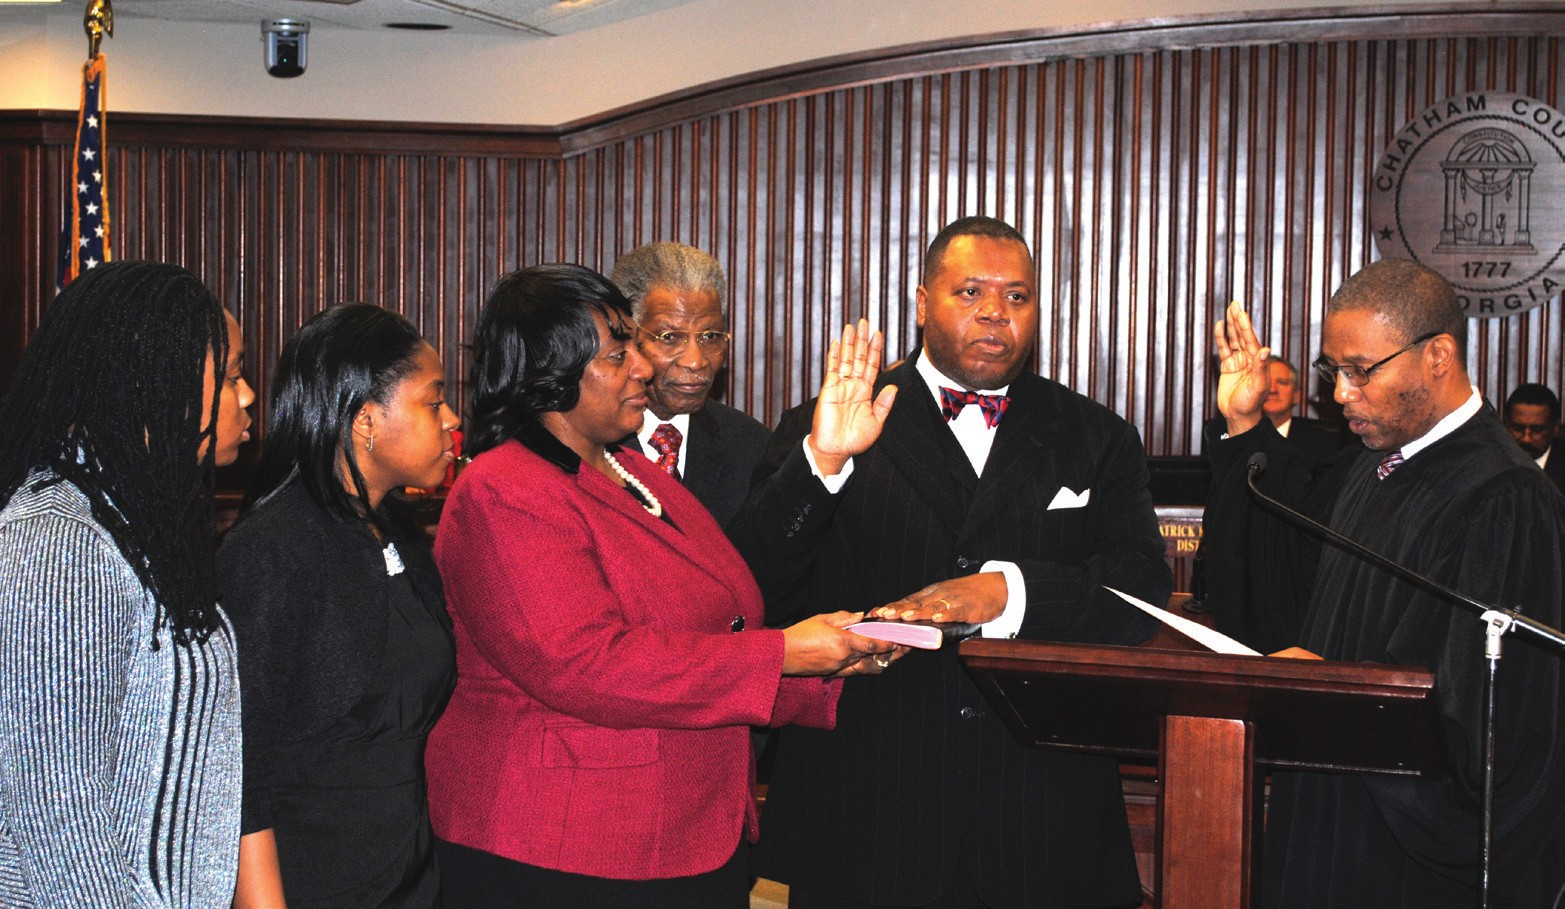 Commissioner Yusuf Shabazz, District 5, sworn in by The Honorable John E. Morse, Jr.